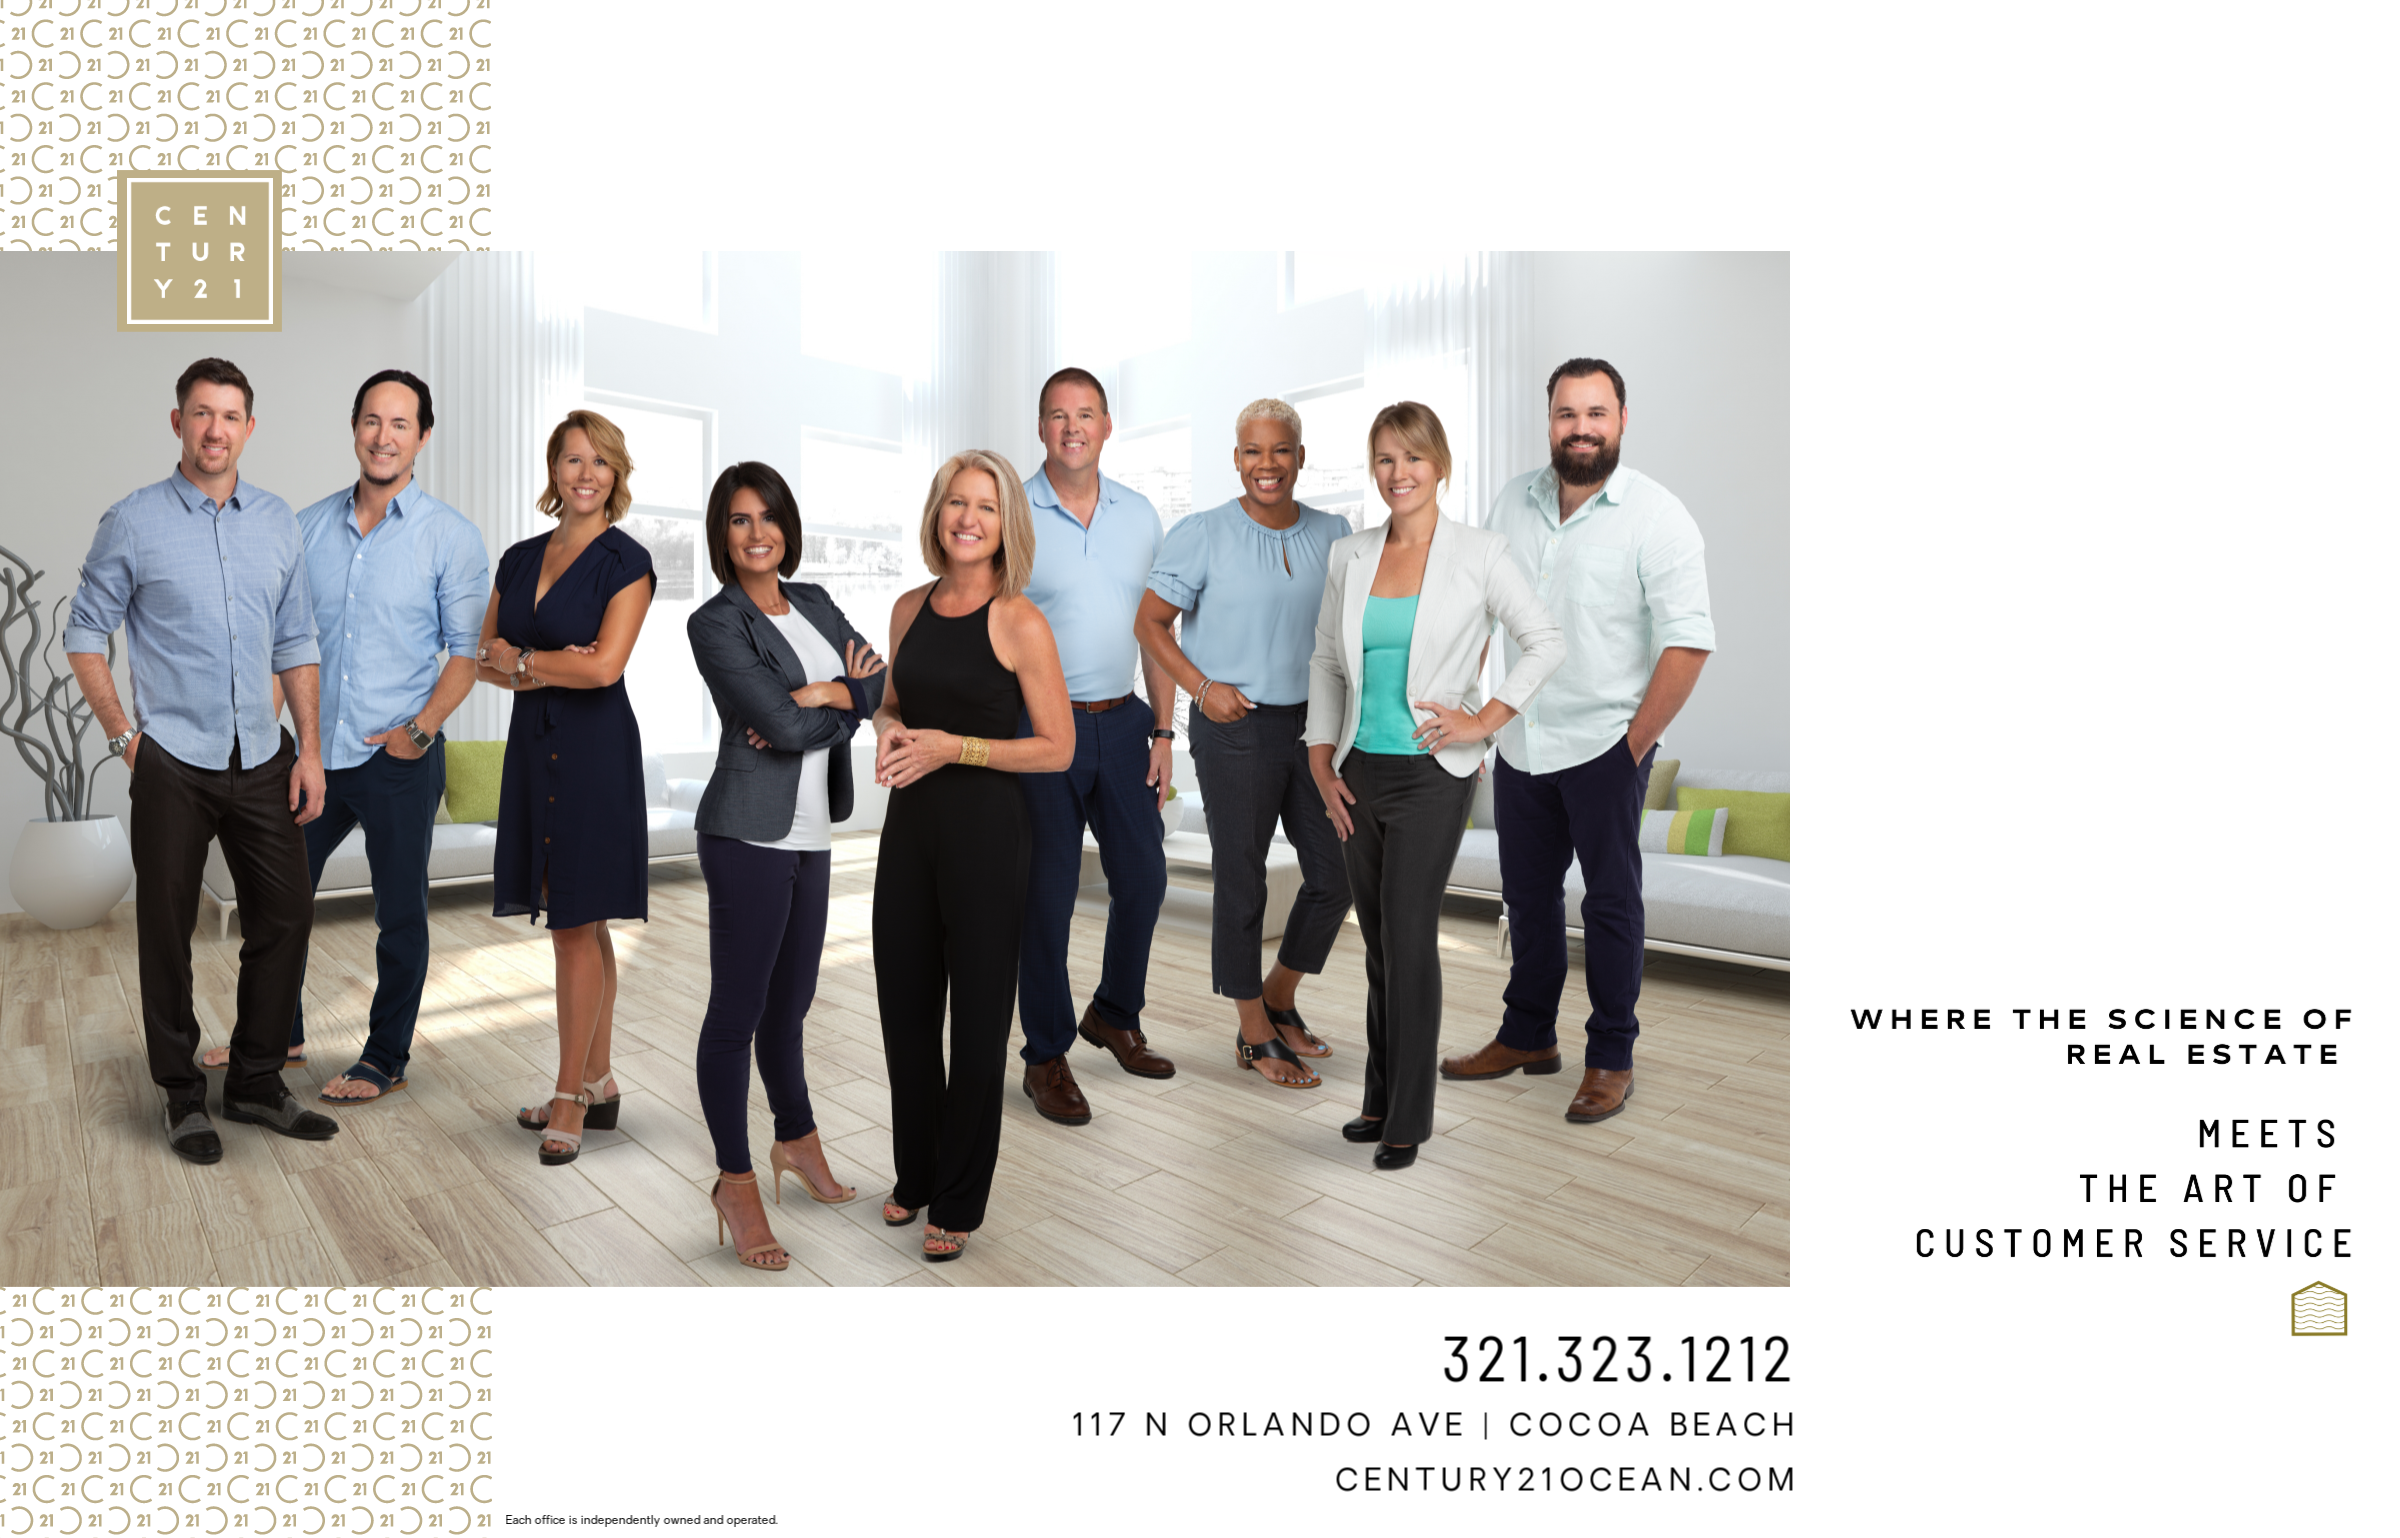 Brevard County Real Estate Experts